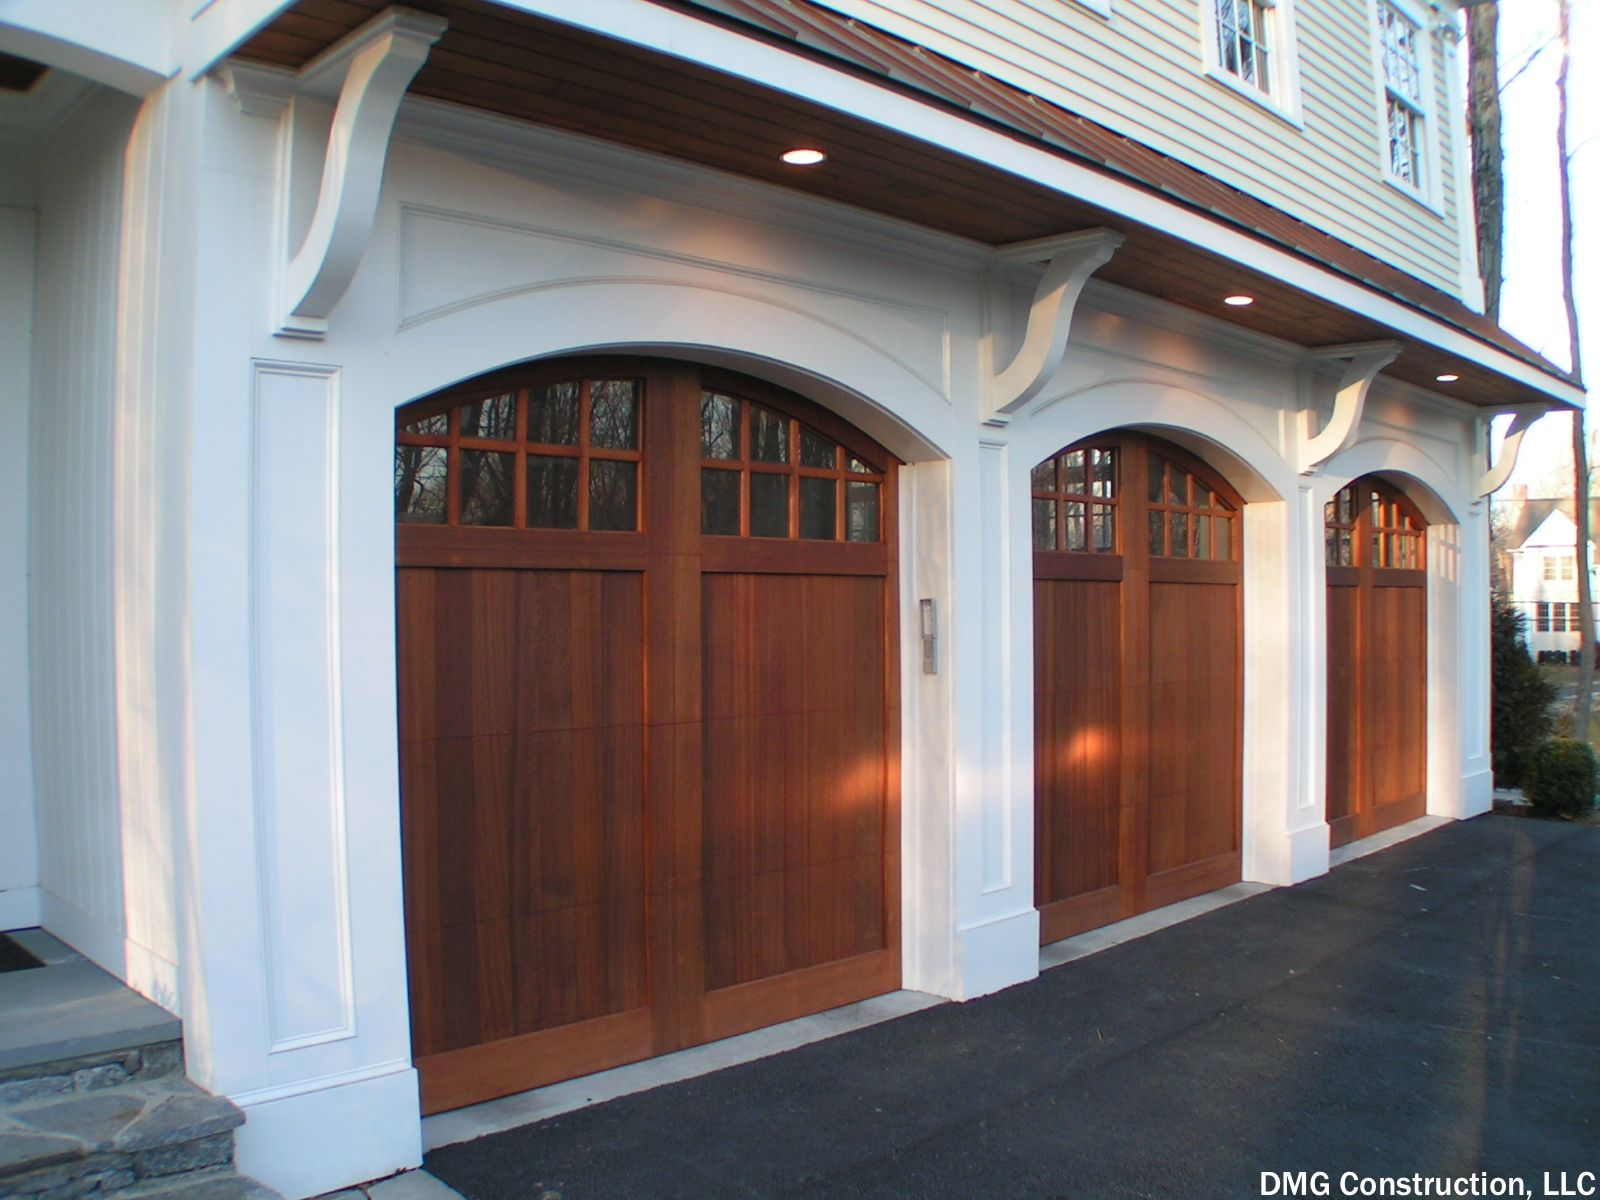 Garage sheds cost small windows garage doors and car garage 3 car garage with arched doors small windows and wooden garage doors if rubansaba